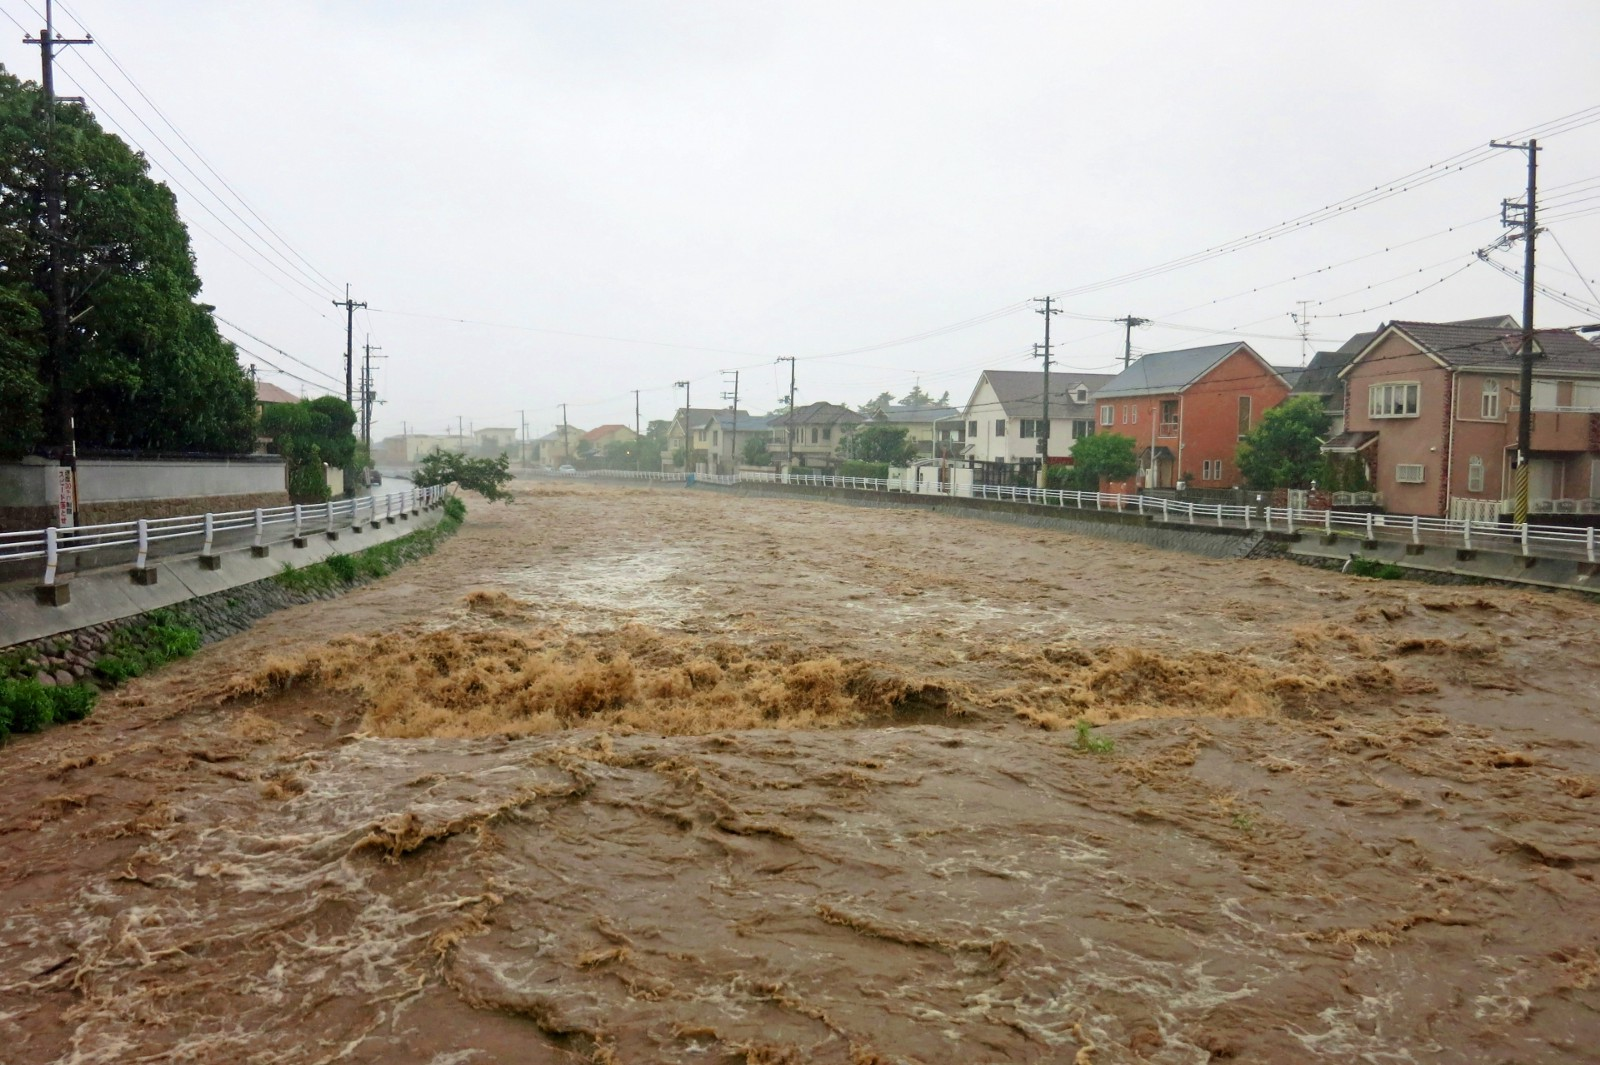 River flooding caused by a typhoon